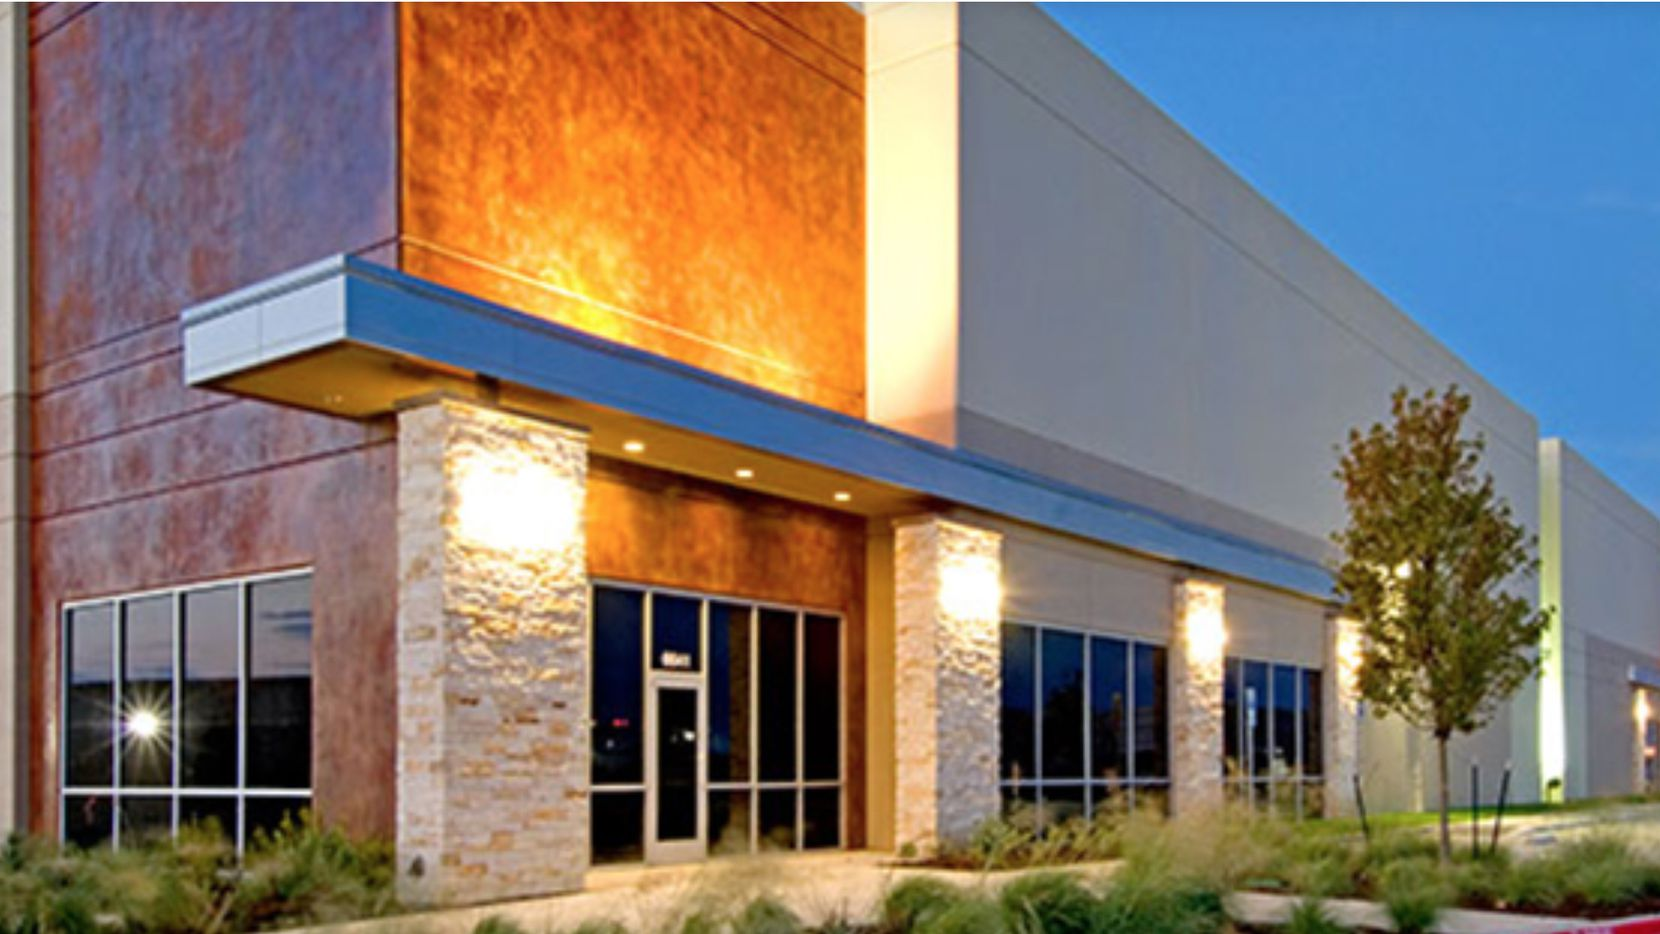 Colony Industrial has more than 7.4 million square feet of warehouse projects in the D-FW area.